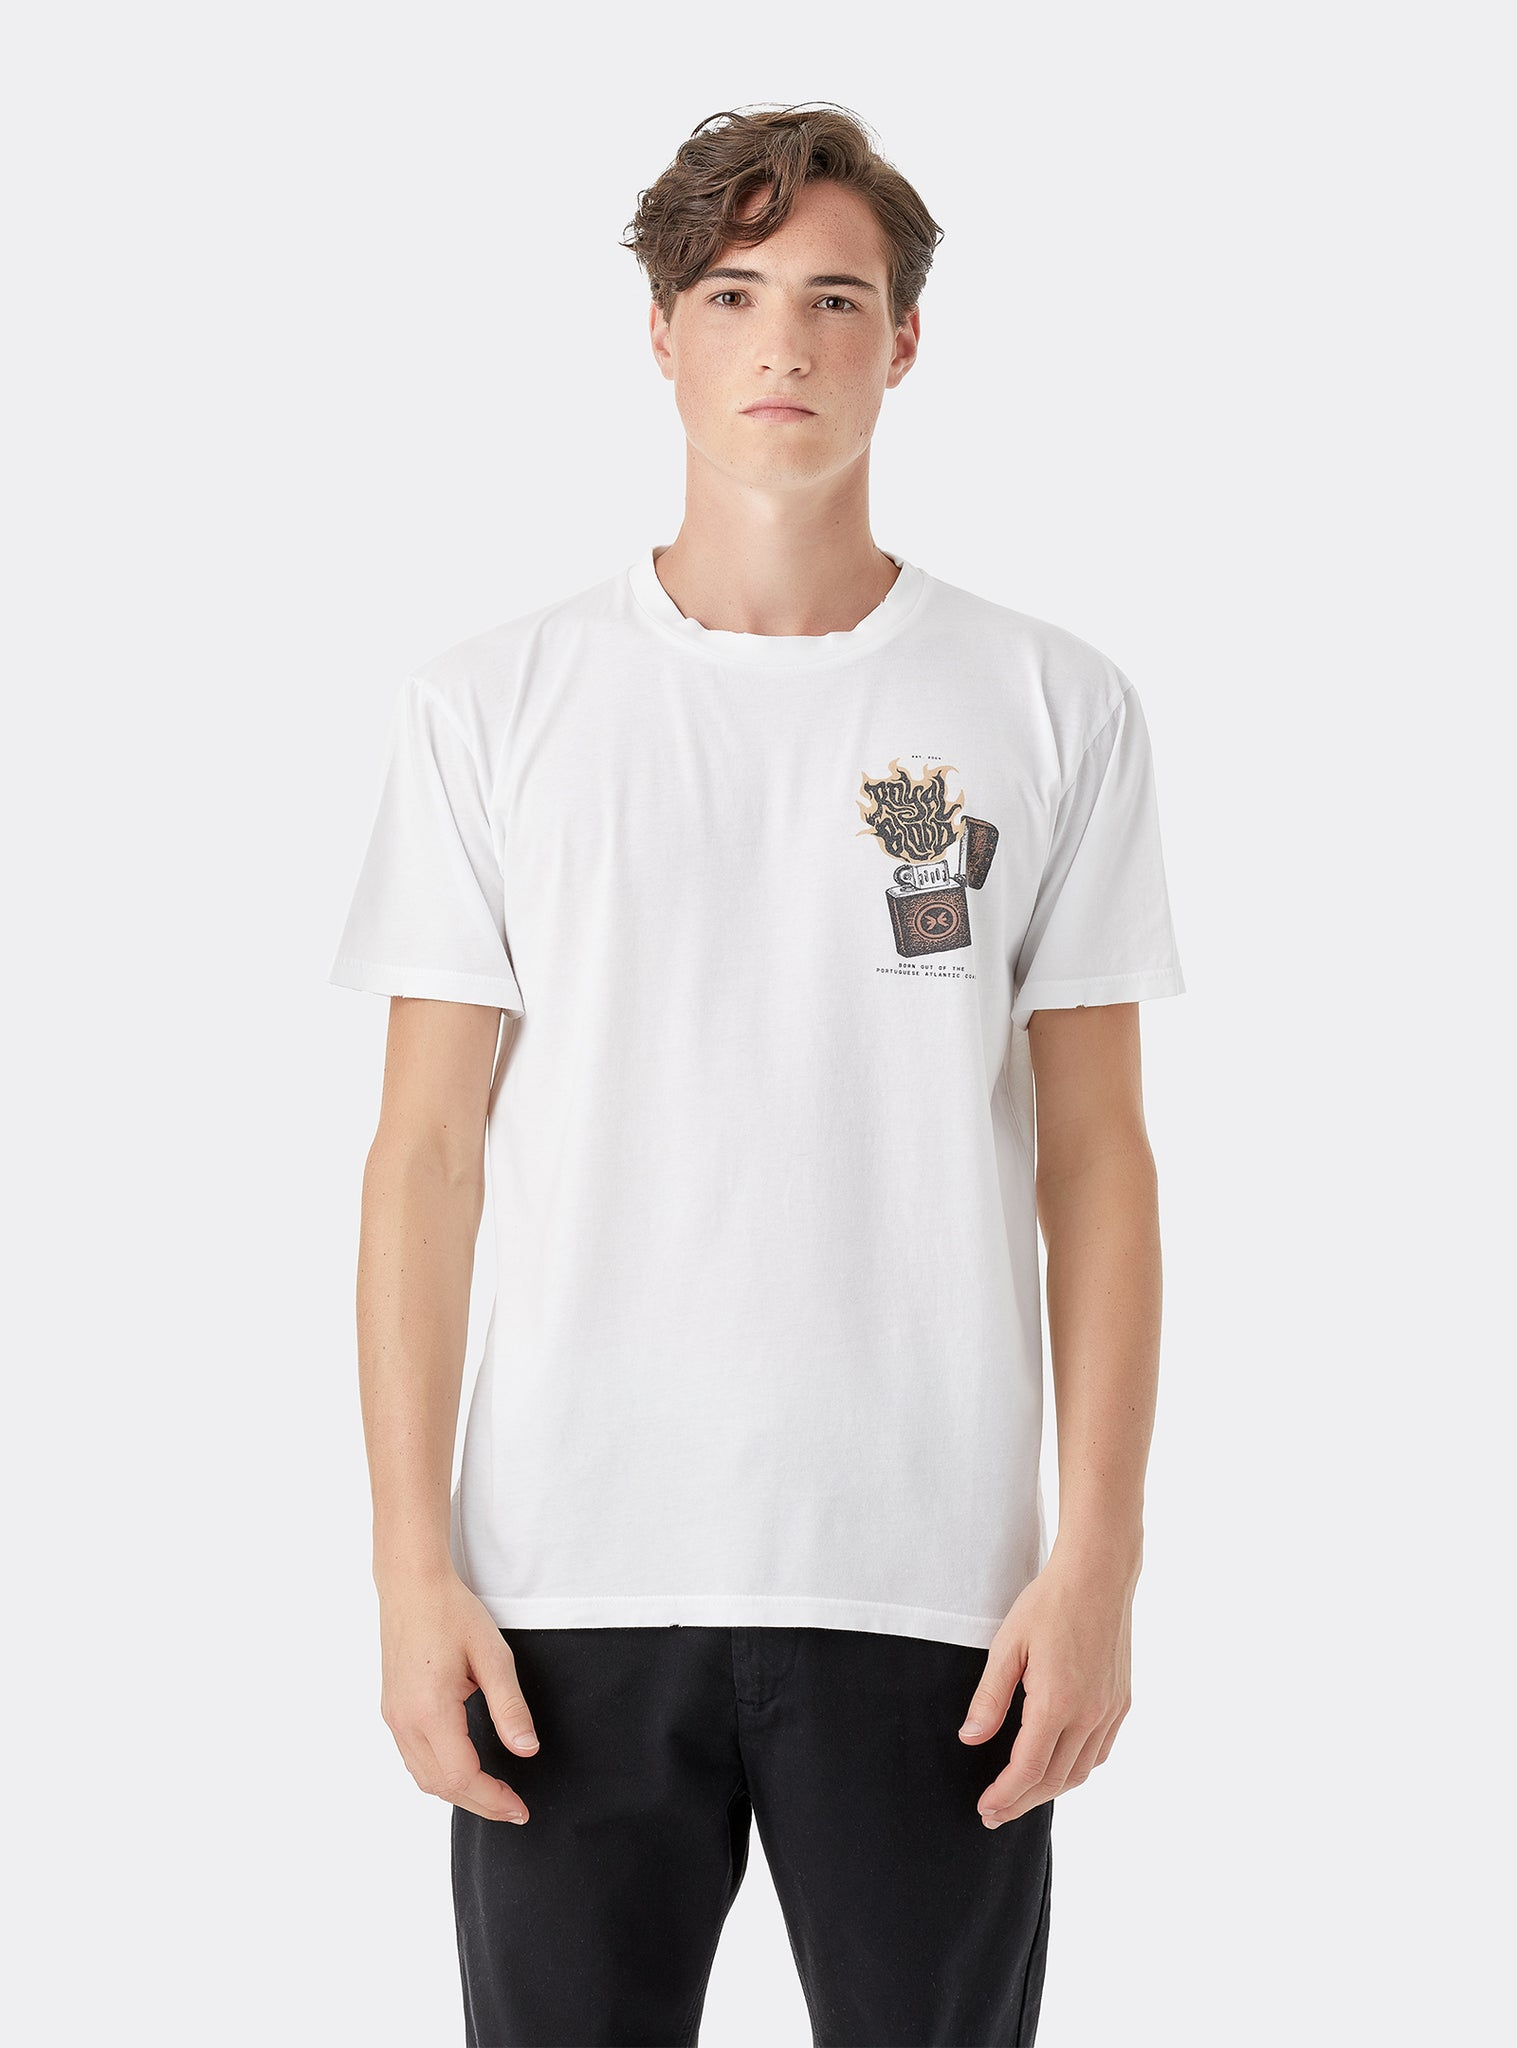 Expect T-shirt Manches Courtes Blanc